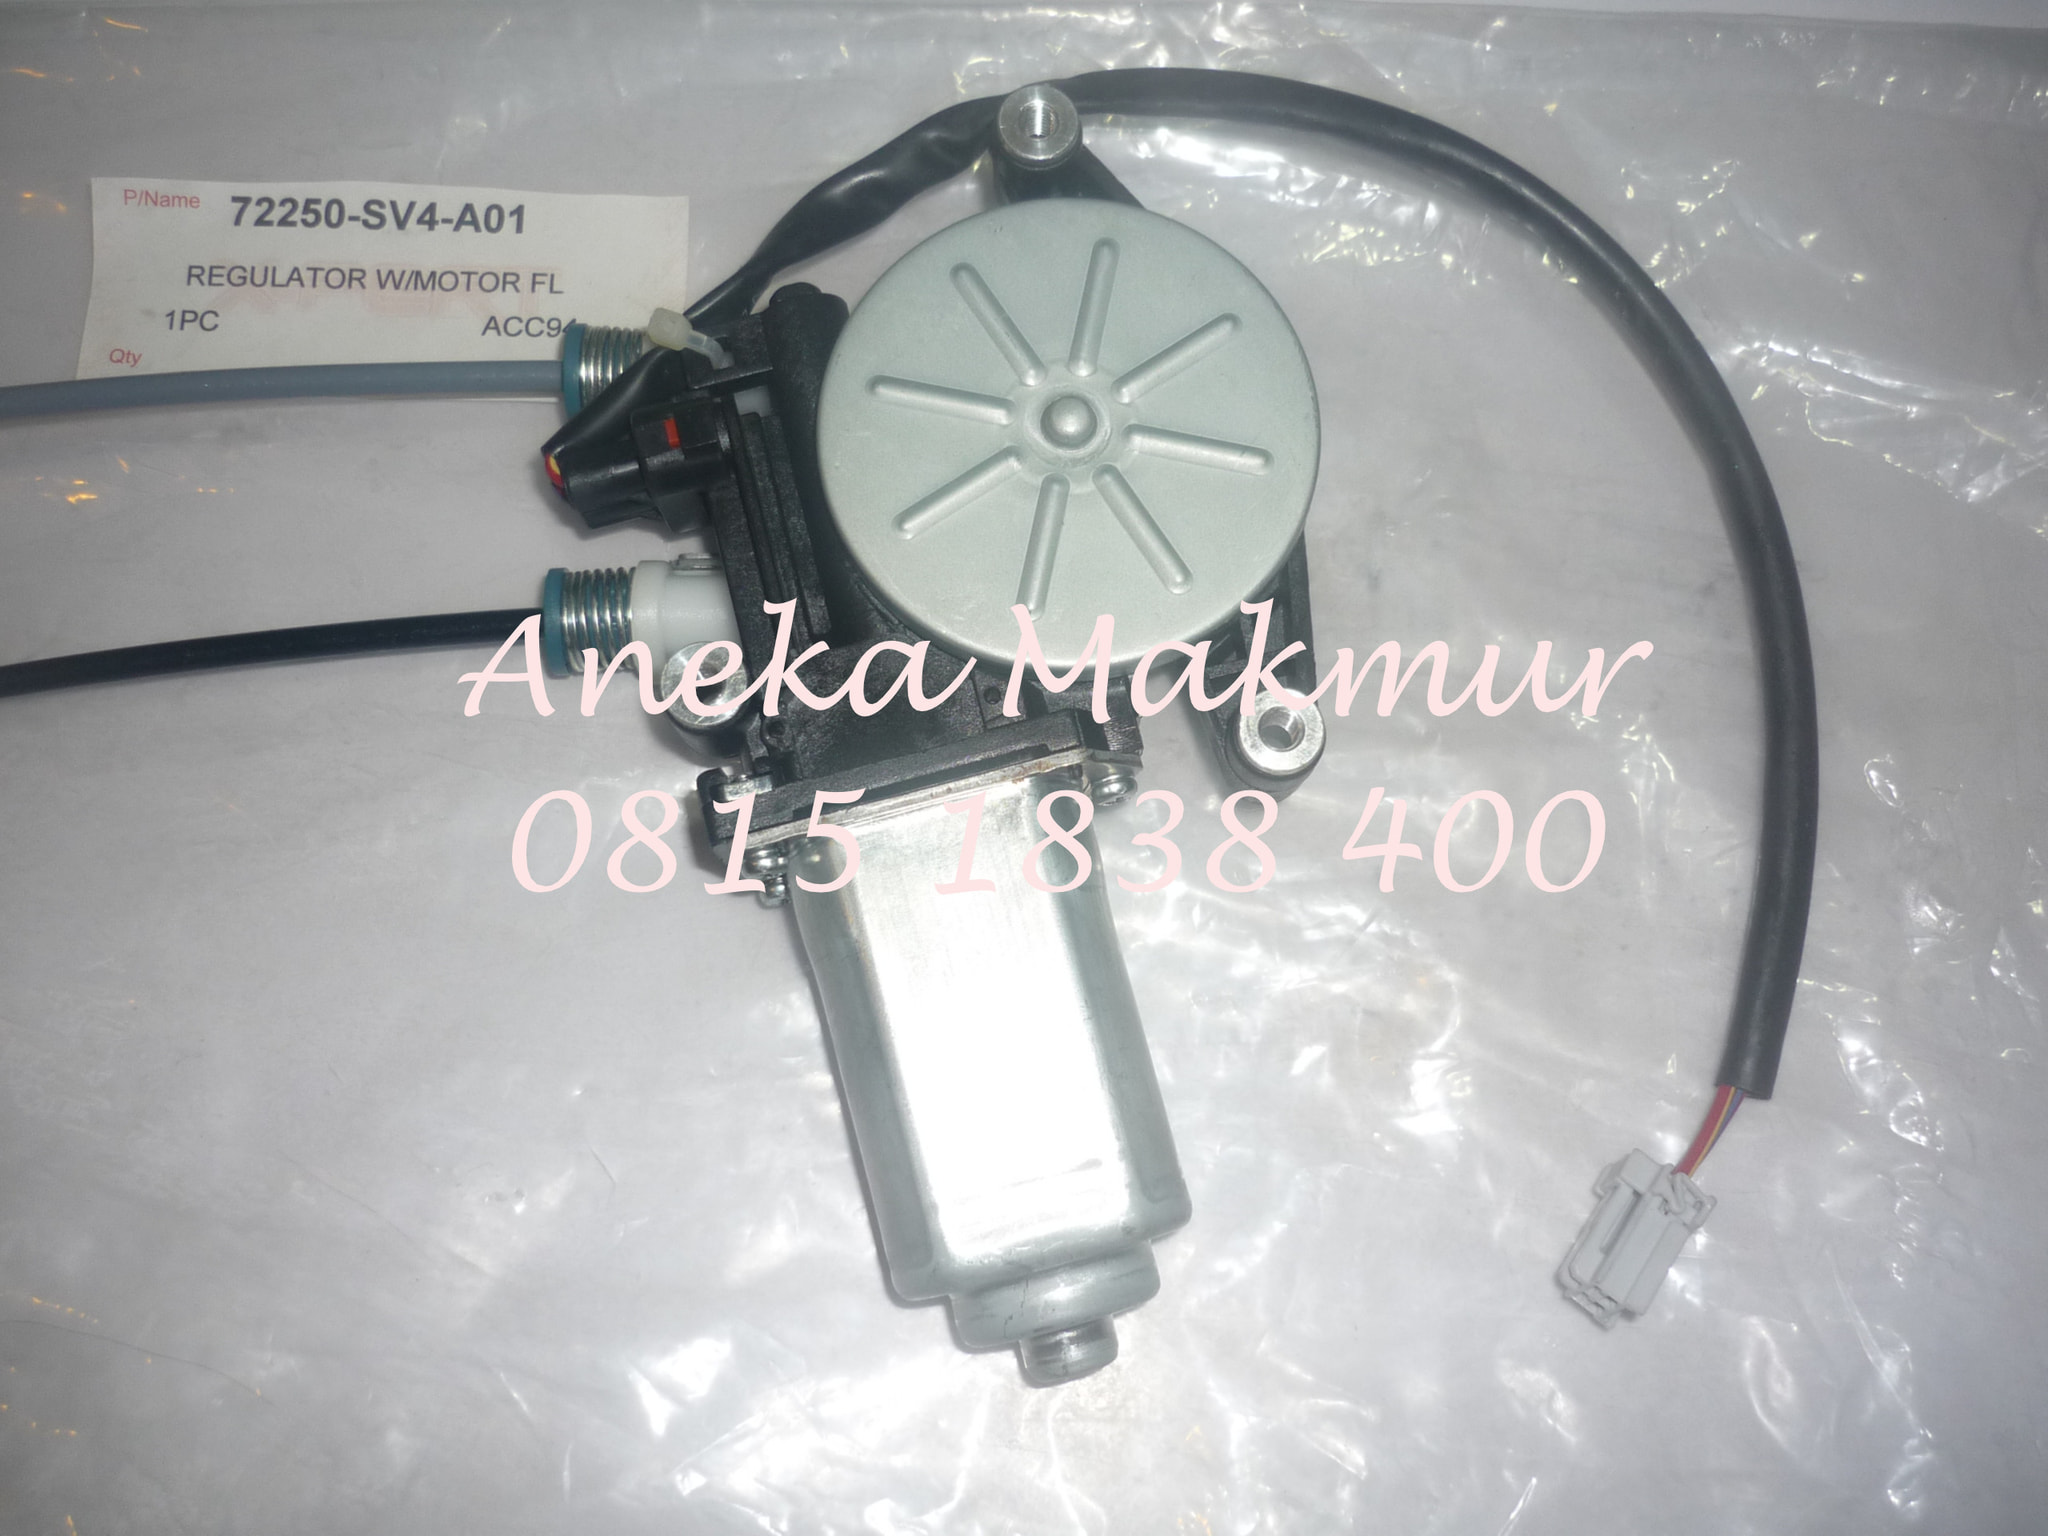 Jual regulator window honda accord cielo 1994 1999 aneka for 2002 honda accord power window problems